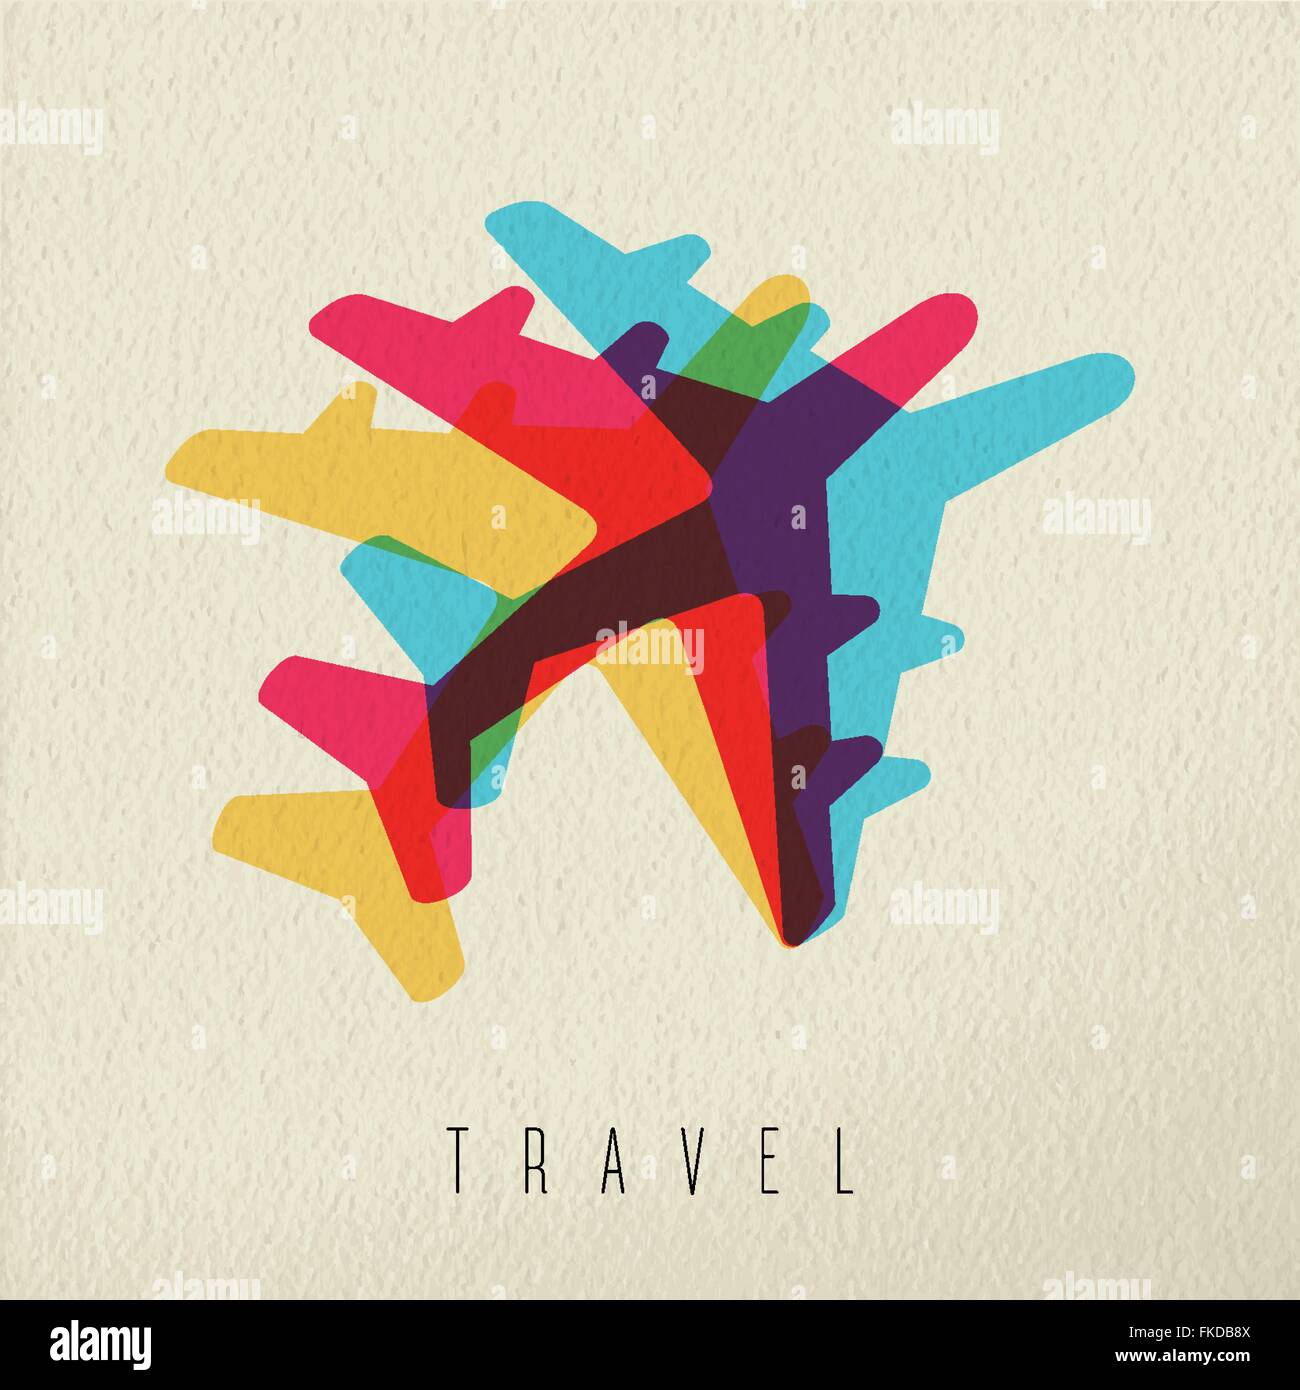 Travel concept illustration with colorful jet plane silhouette on texture background. EPS10 vector. - Stock Image